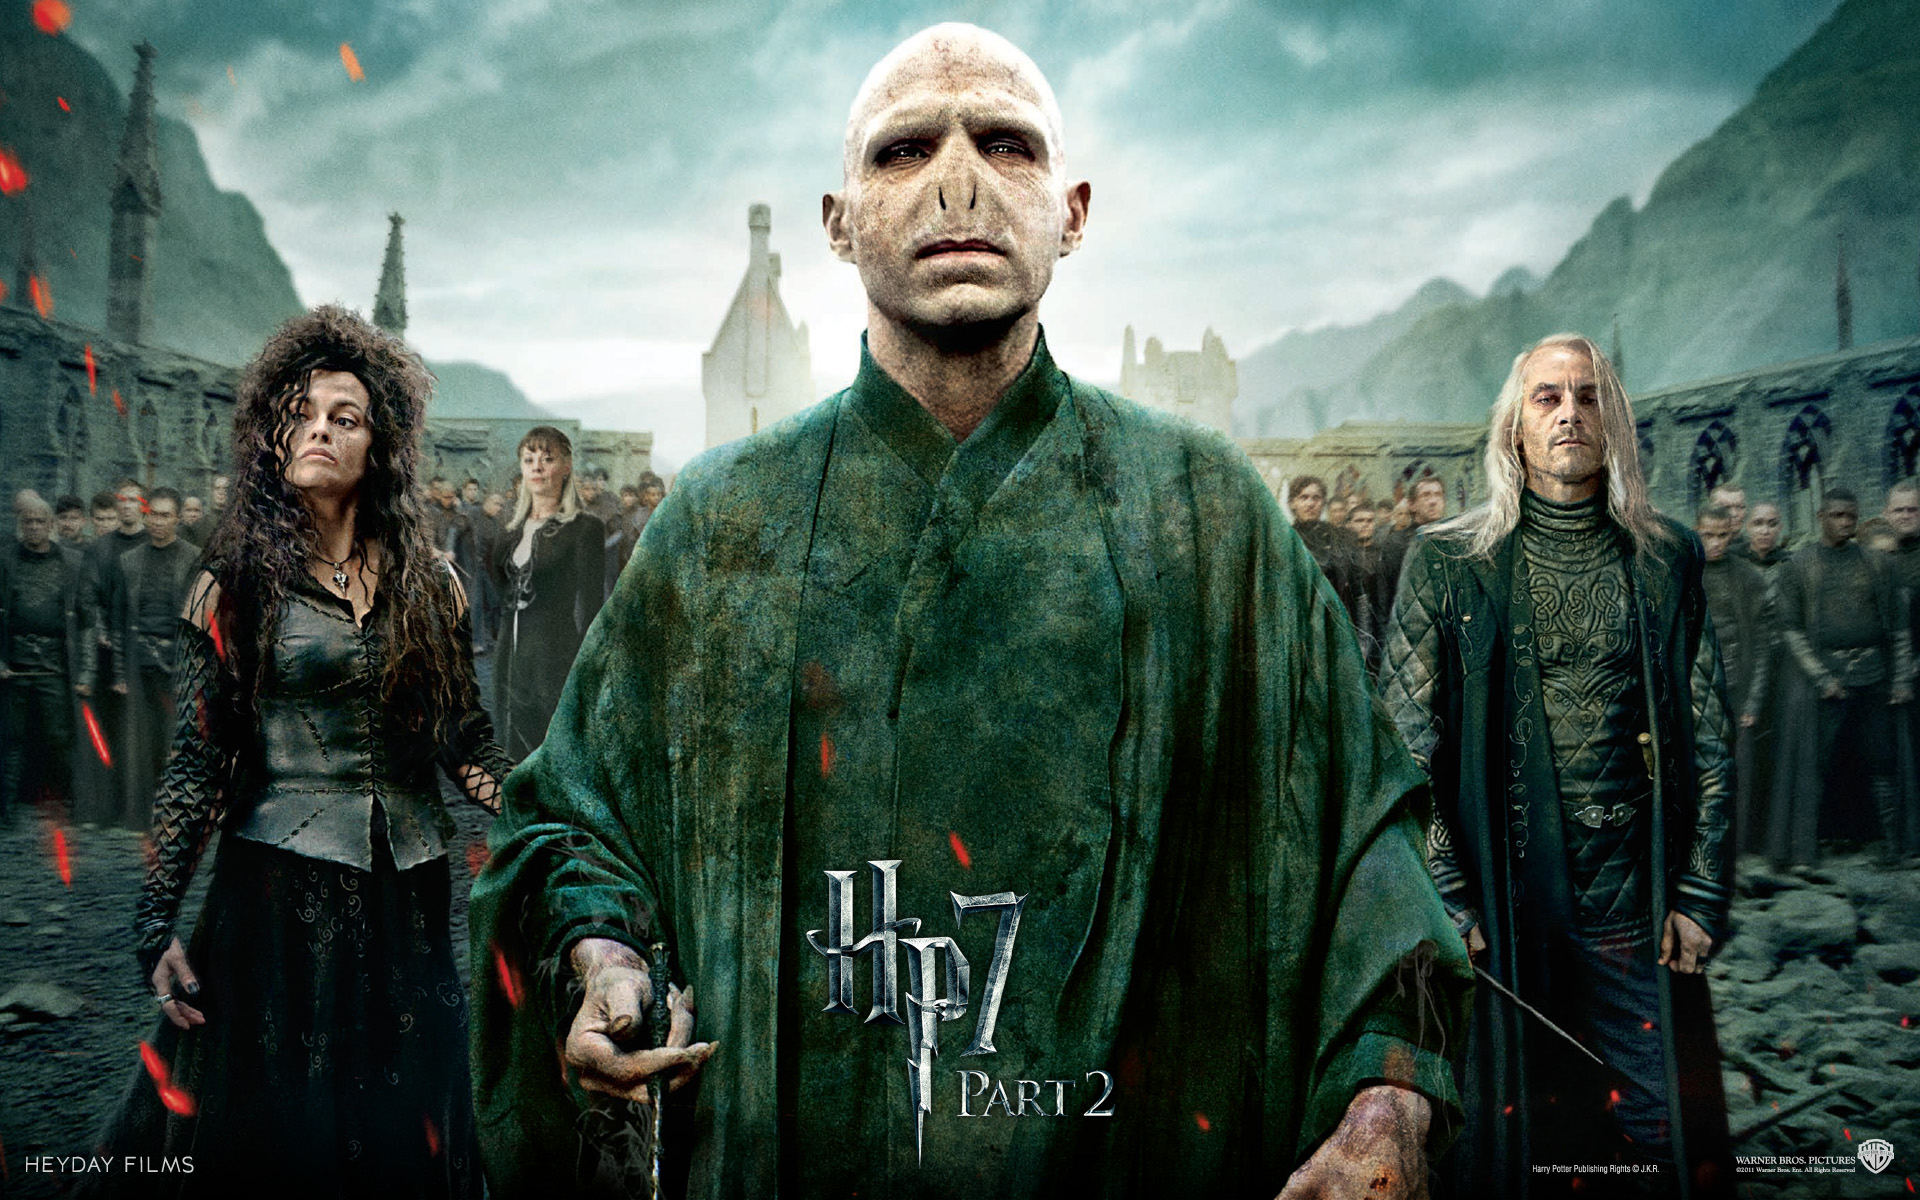 Wallpaper HP7 Draco Trio des forces du Mal - Bellatrix - Voldemort - Lucius Harry Potter